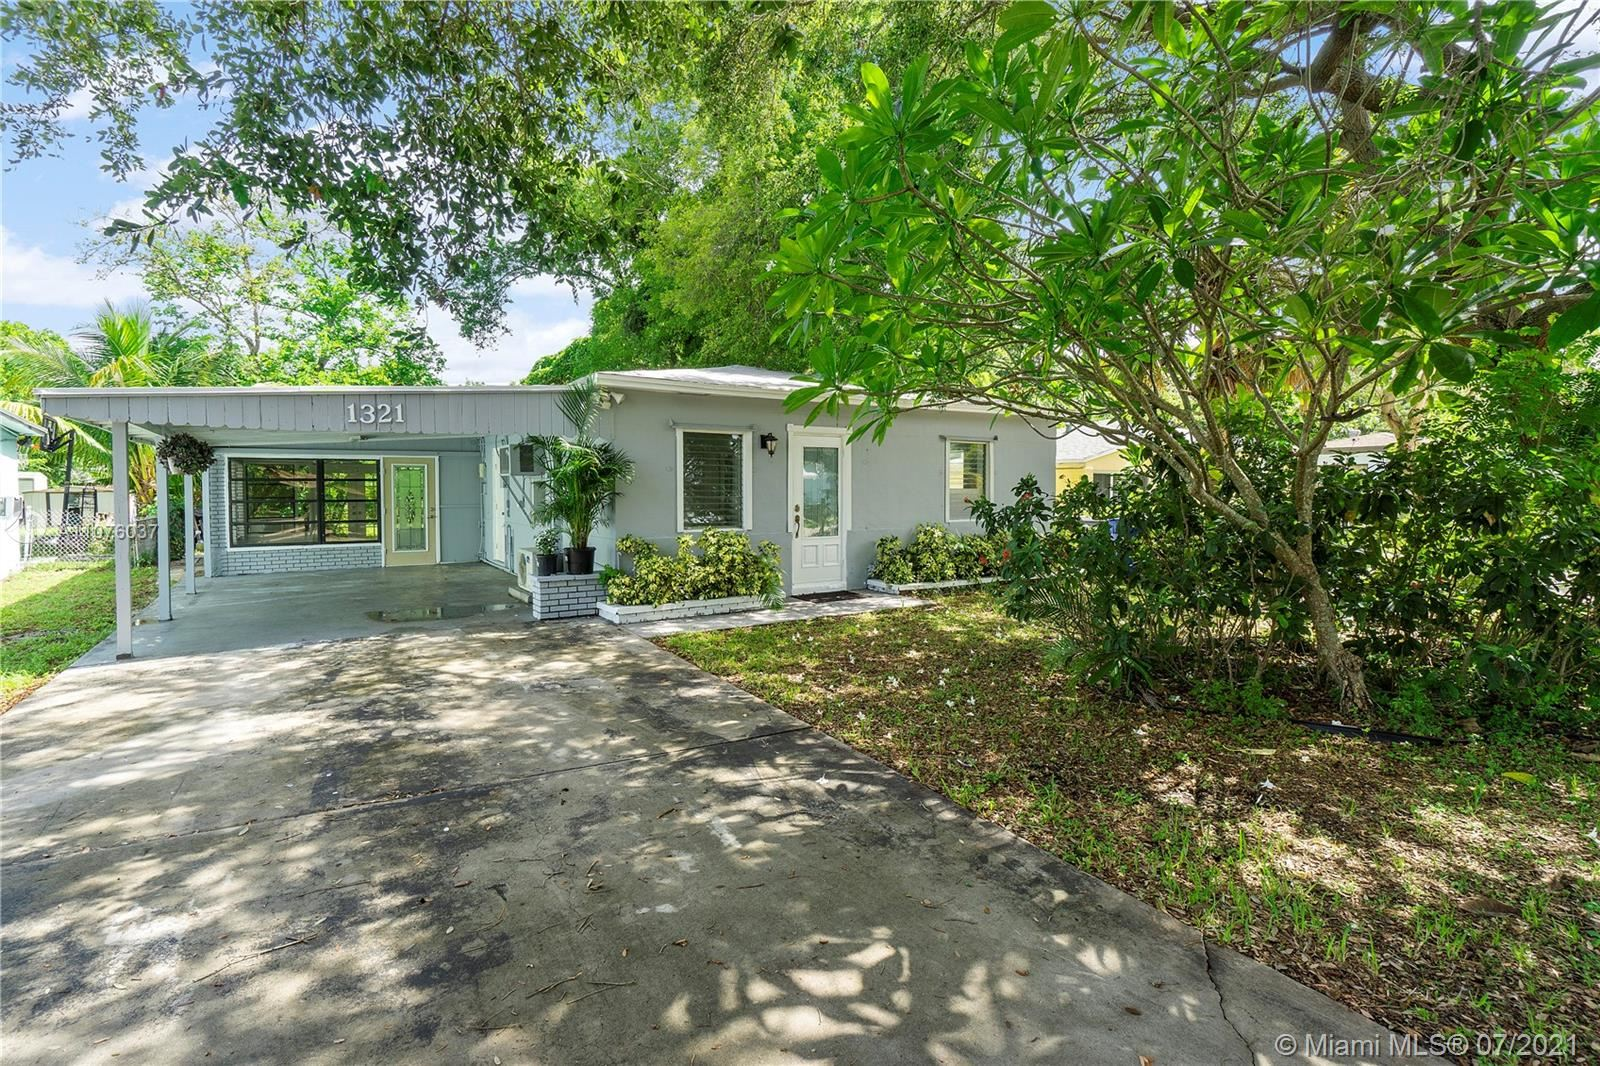 Photo of 1321 SW 31st St, Fort Lauderdale, FL 33315 (MLS # A11076037)